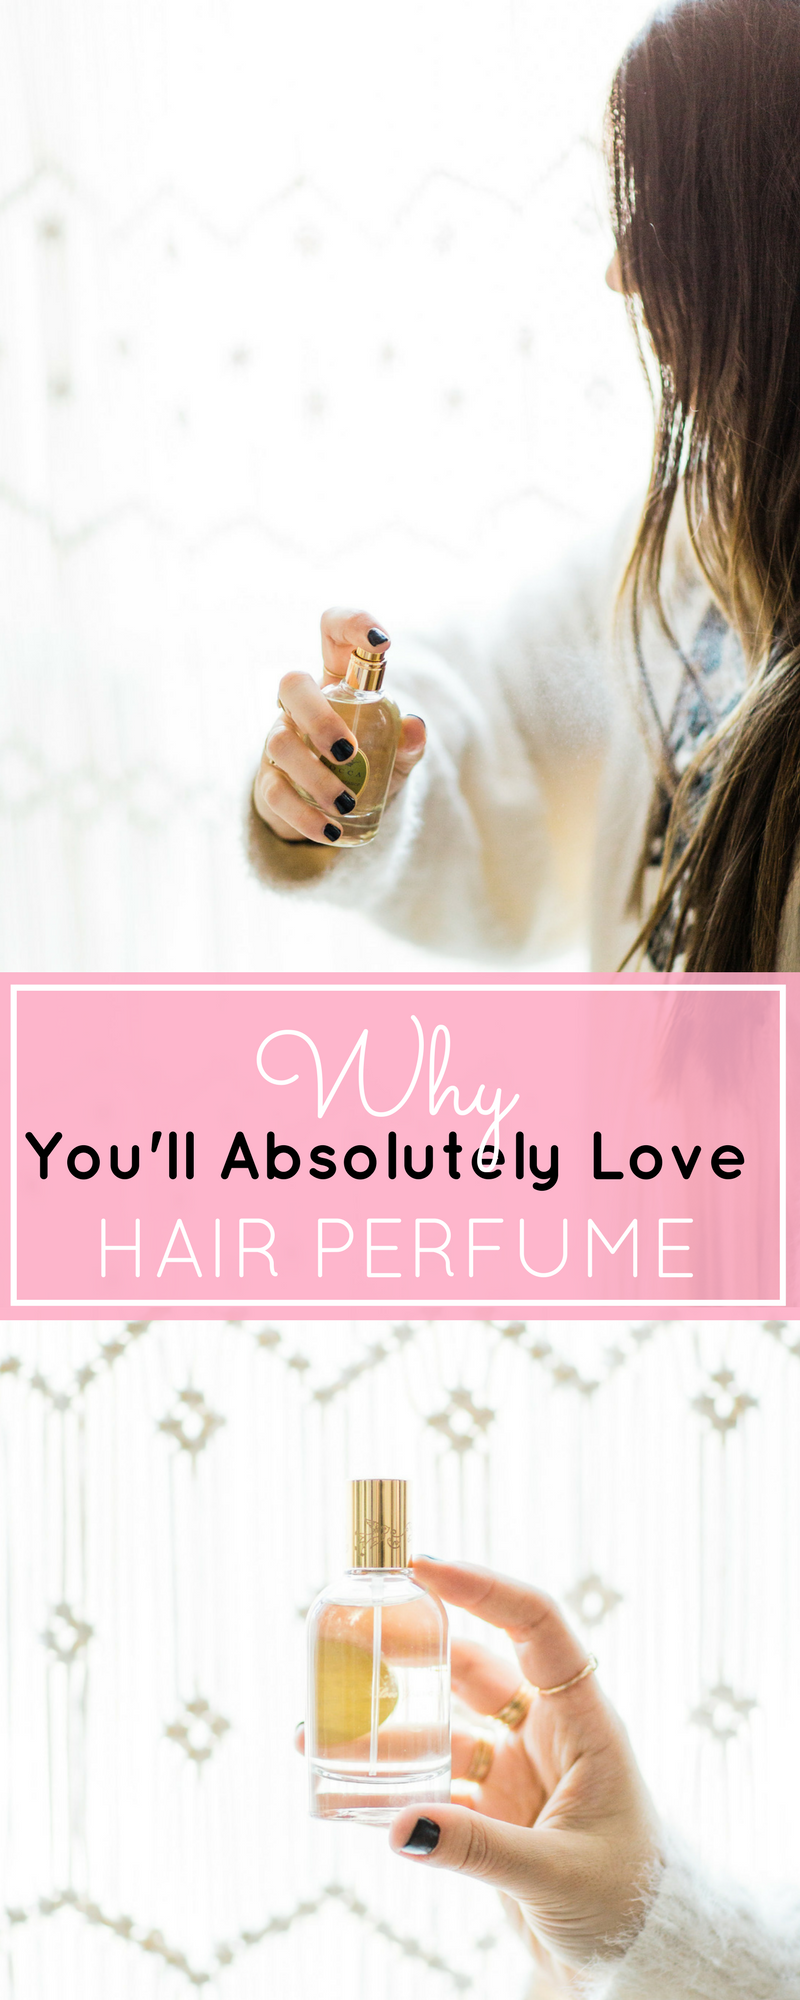 If you want to smell amazing all day long, try Tocca hair perfume. It's fragrant and feminine and gives you perfectly glossy locks. | glitterinc.com | @glitterinc